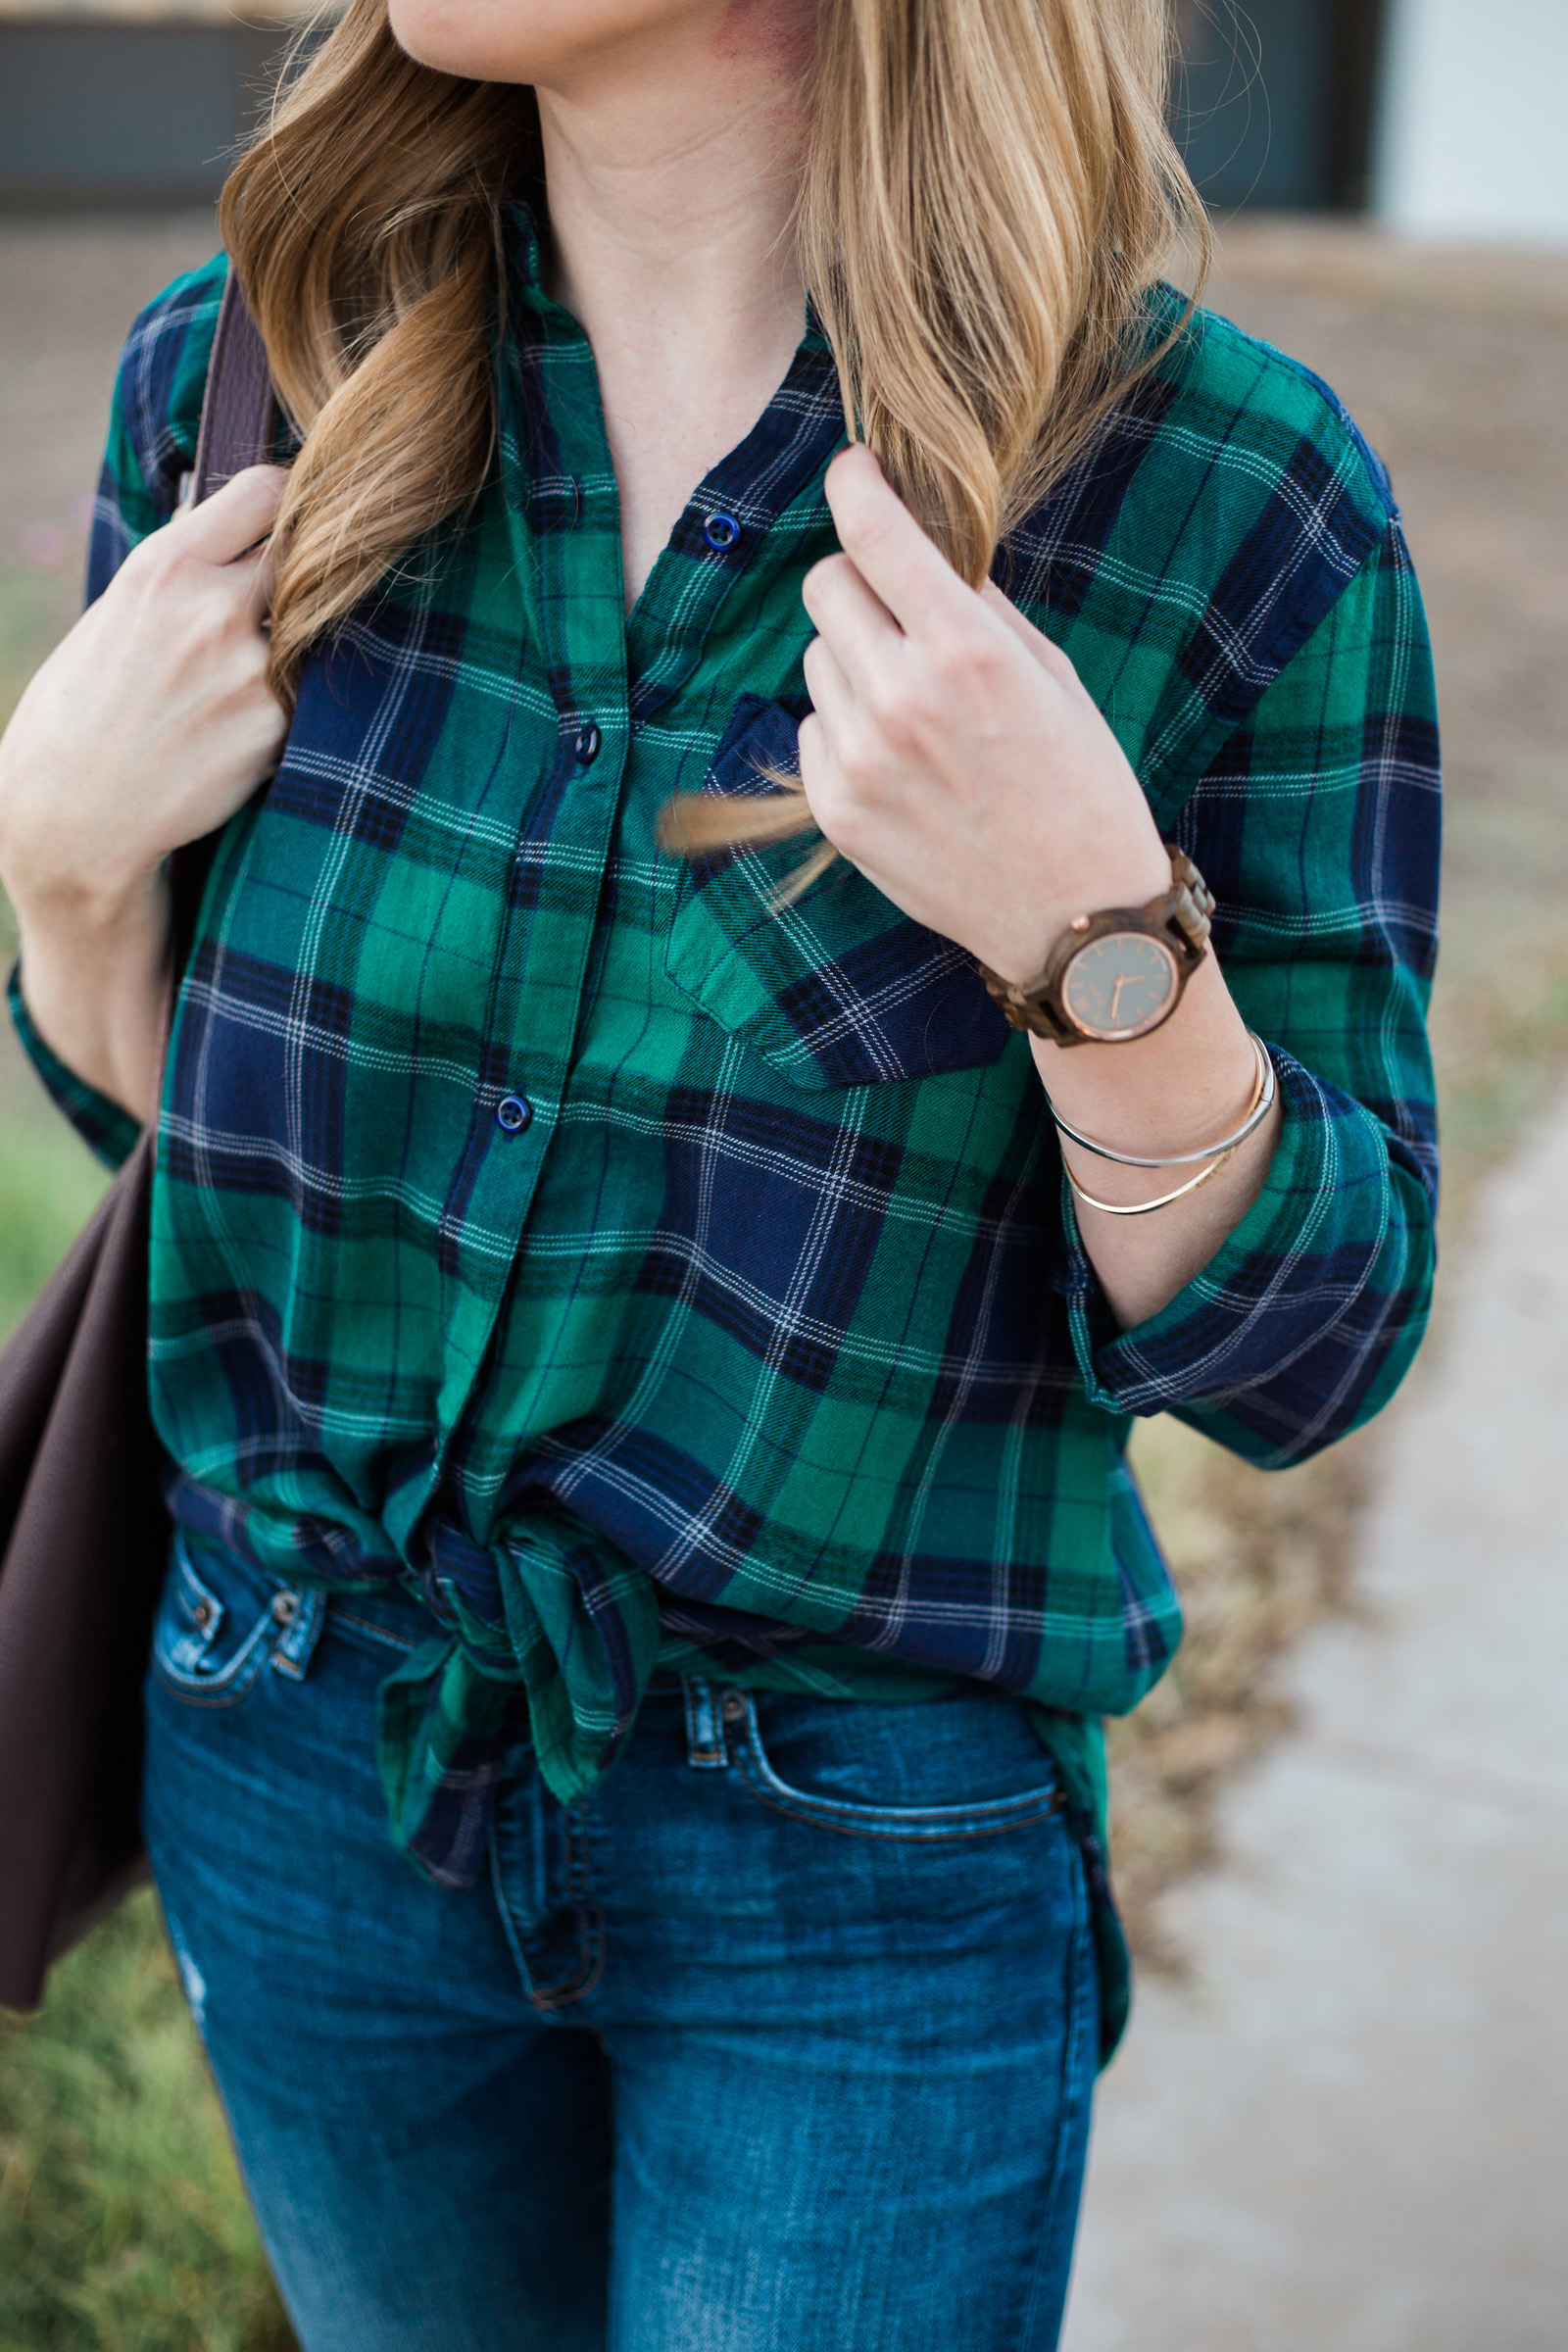 Plaid Shirt and Jord Watch